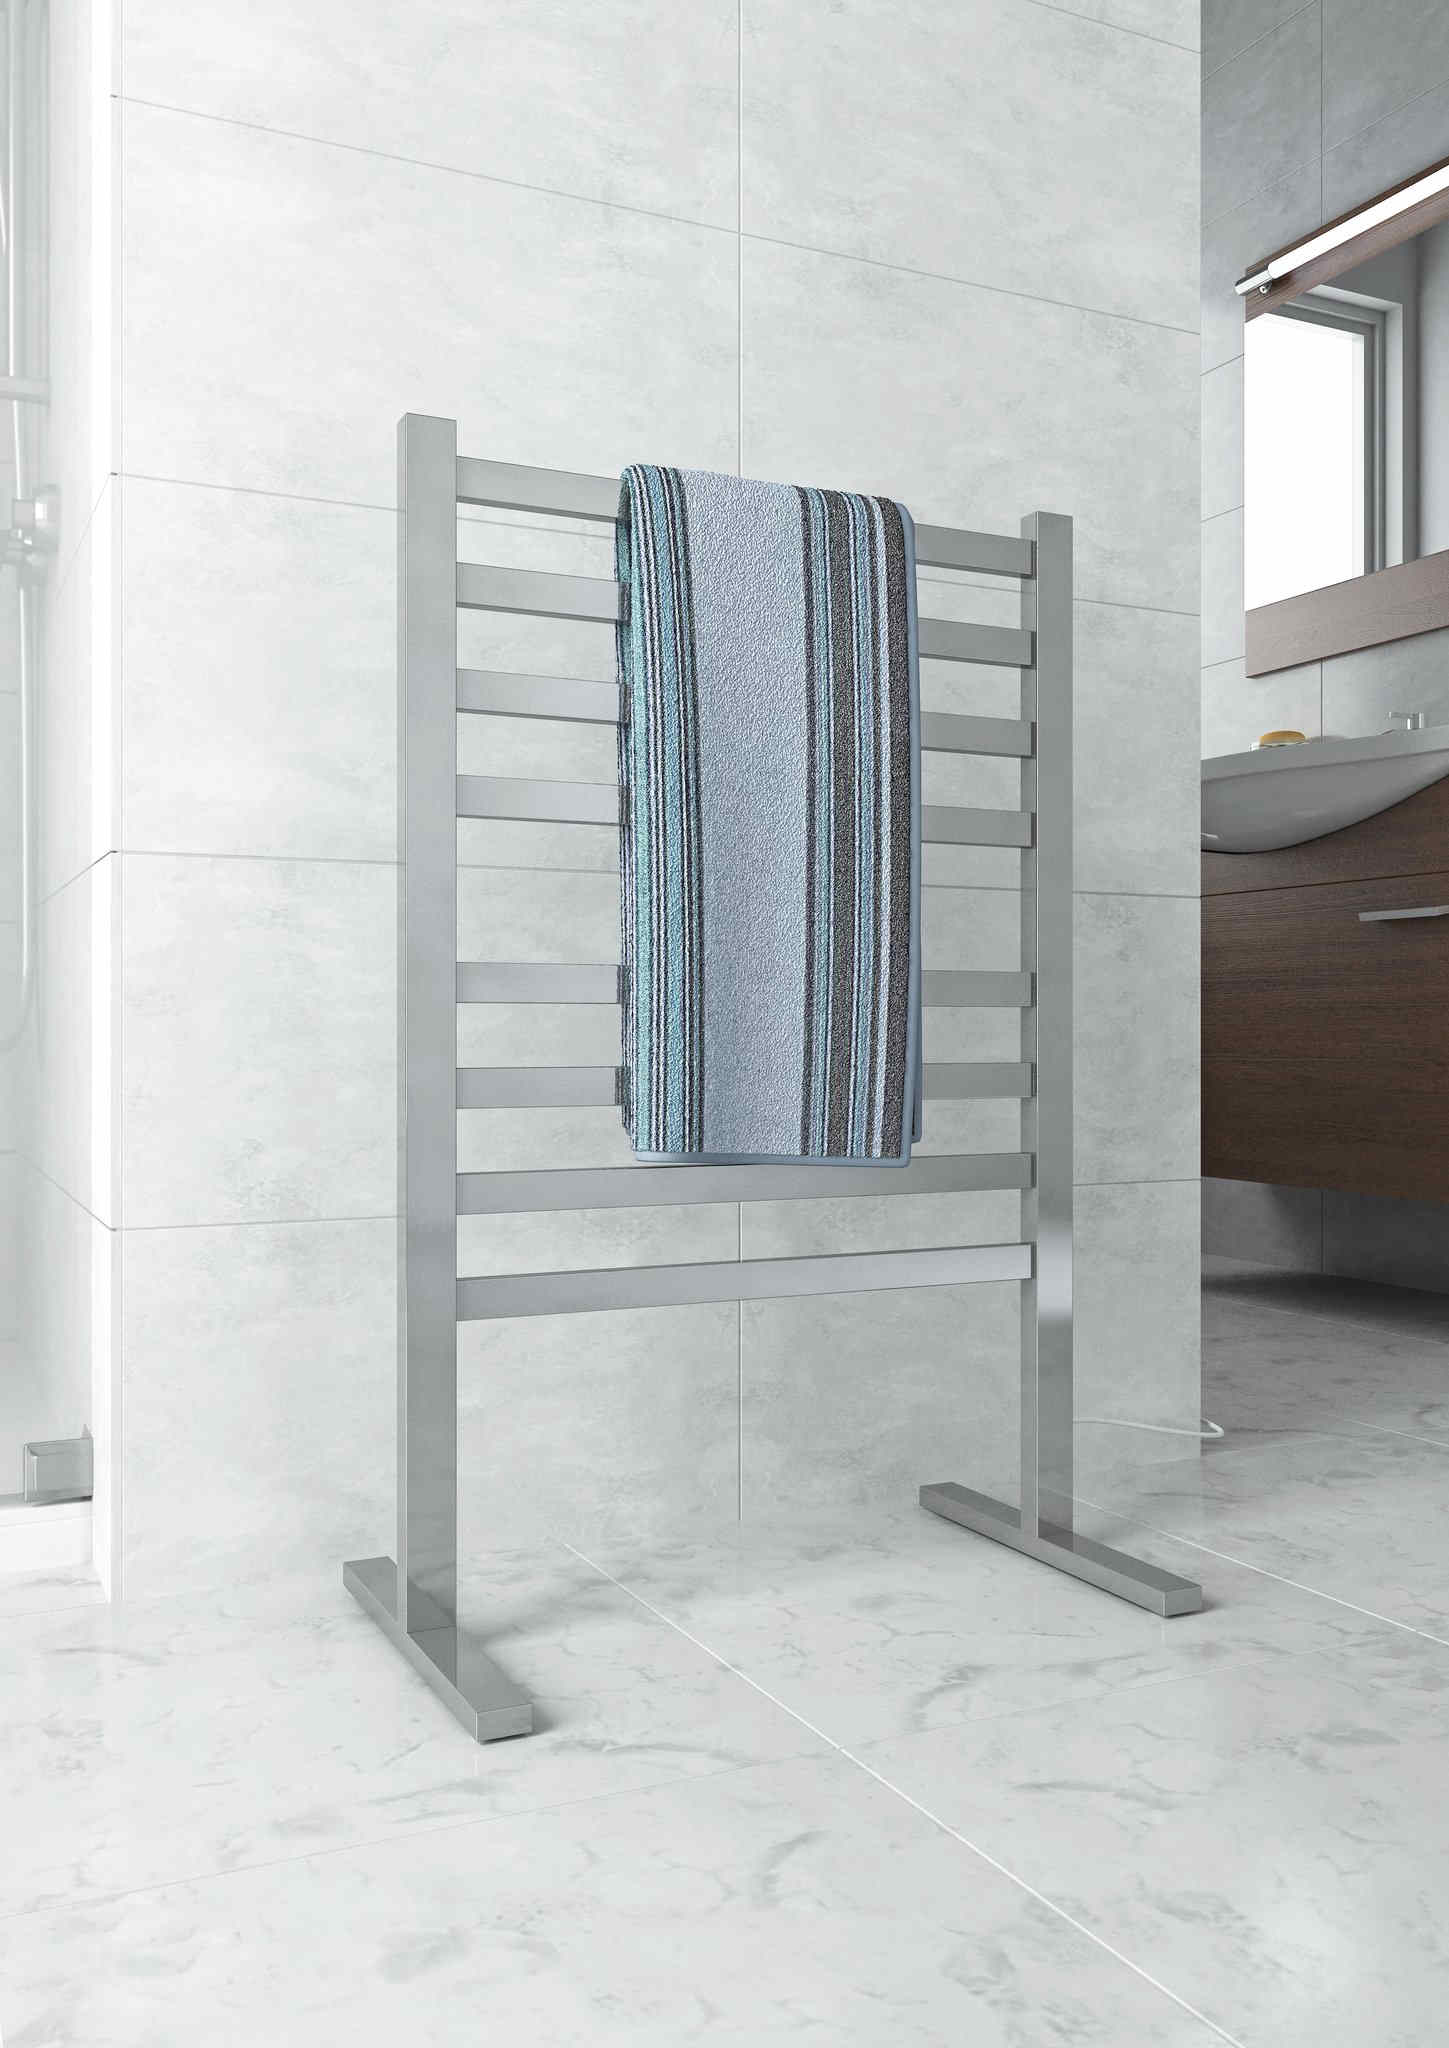 Freestanding eated towel rail